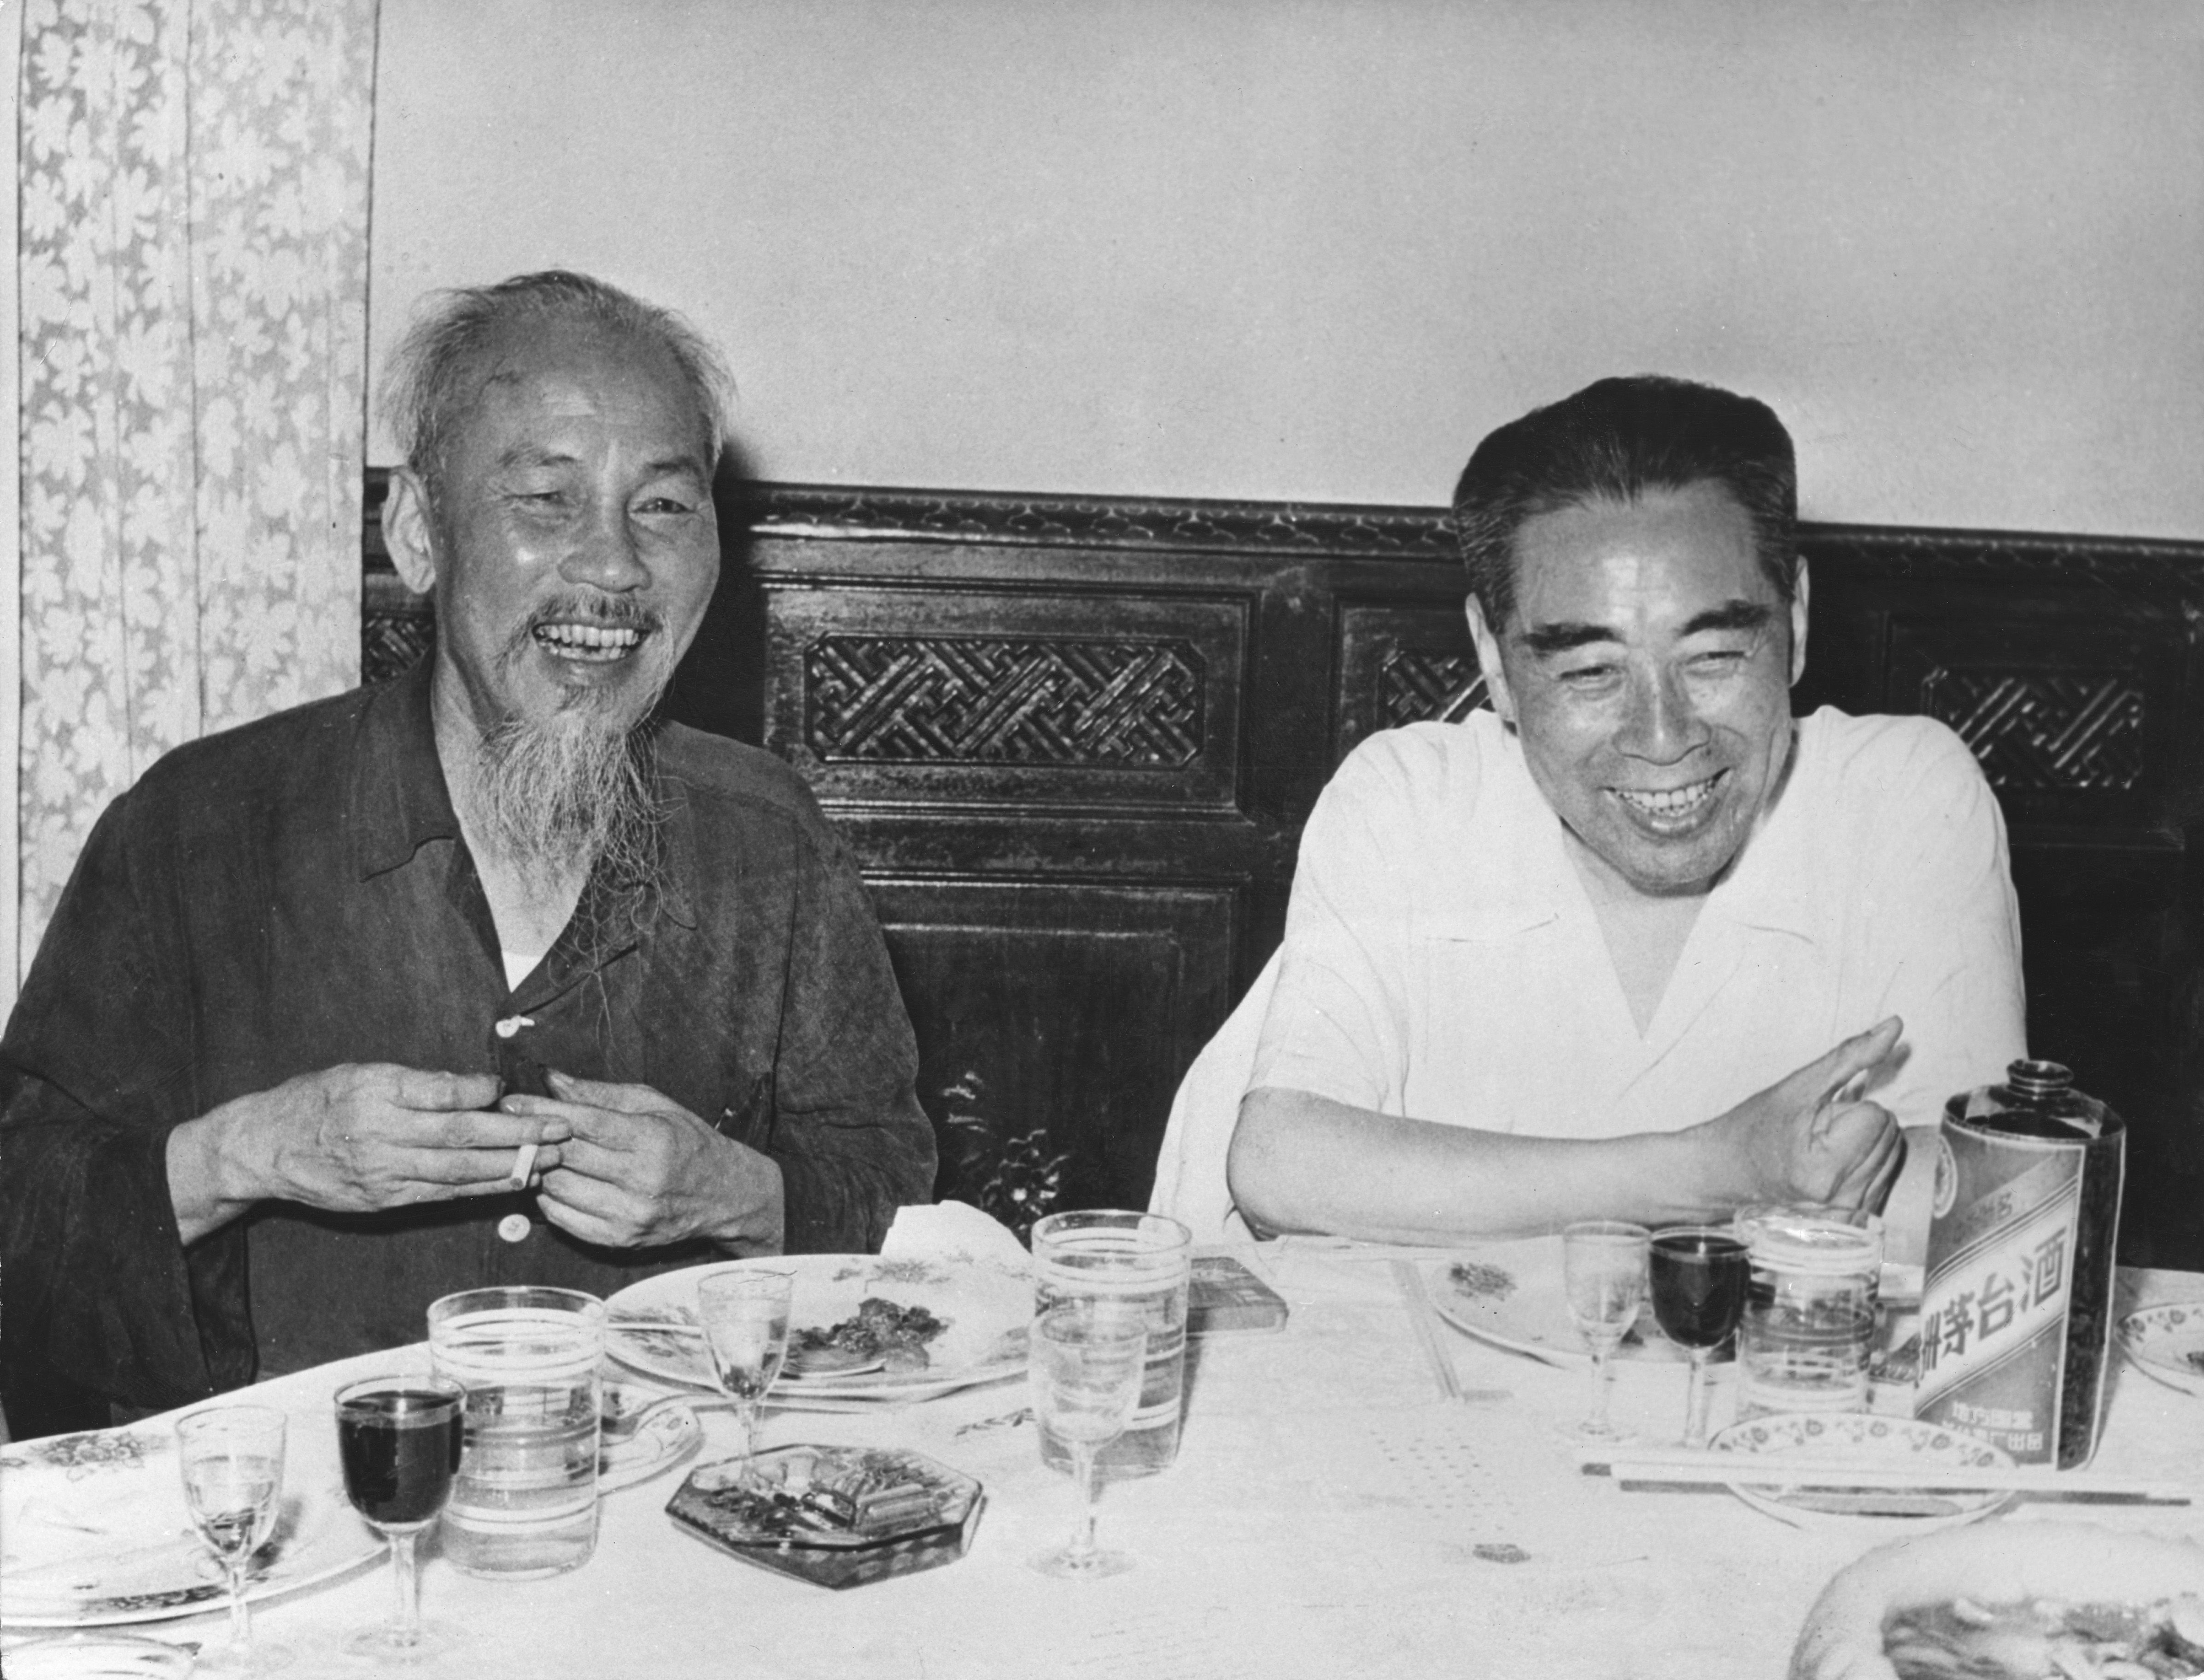 North Vietnamese President and communist revolutionary leader Ho Chi Minh (1890–1969, left) with Prime Minister of the People's Republic of China, Zhou Enlai (1898–1976) in Vietnam, 1960.